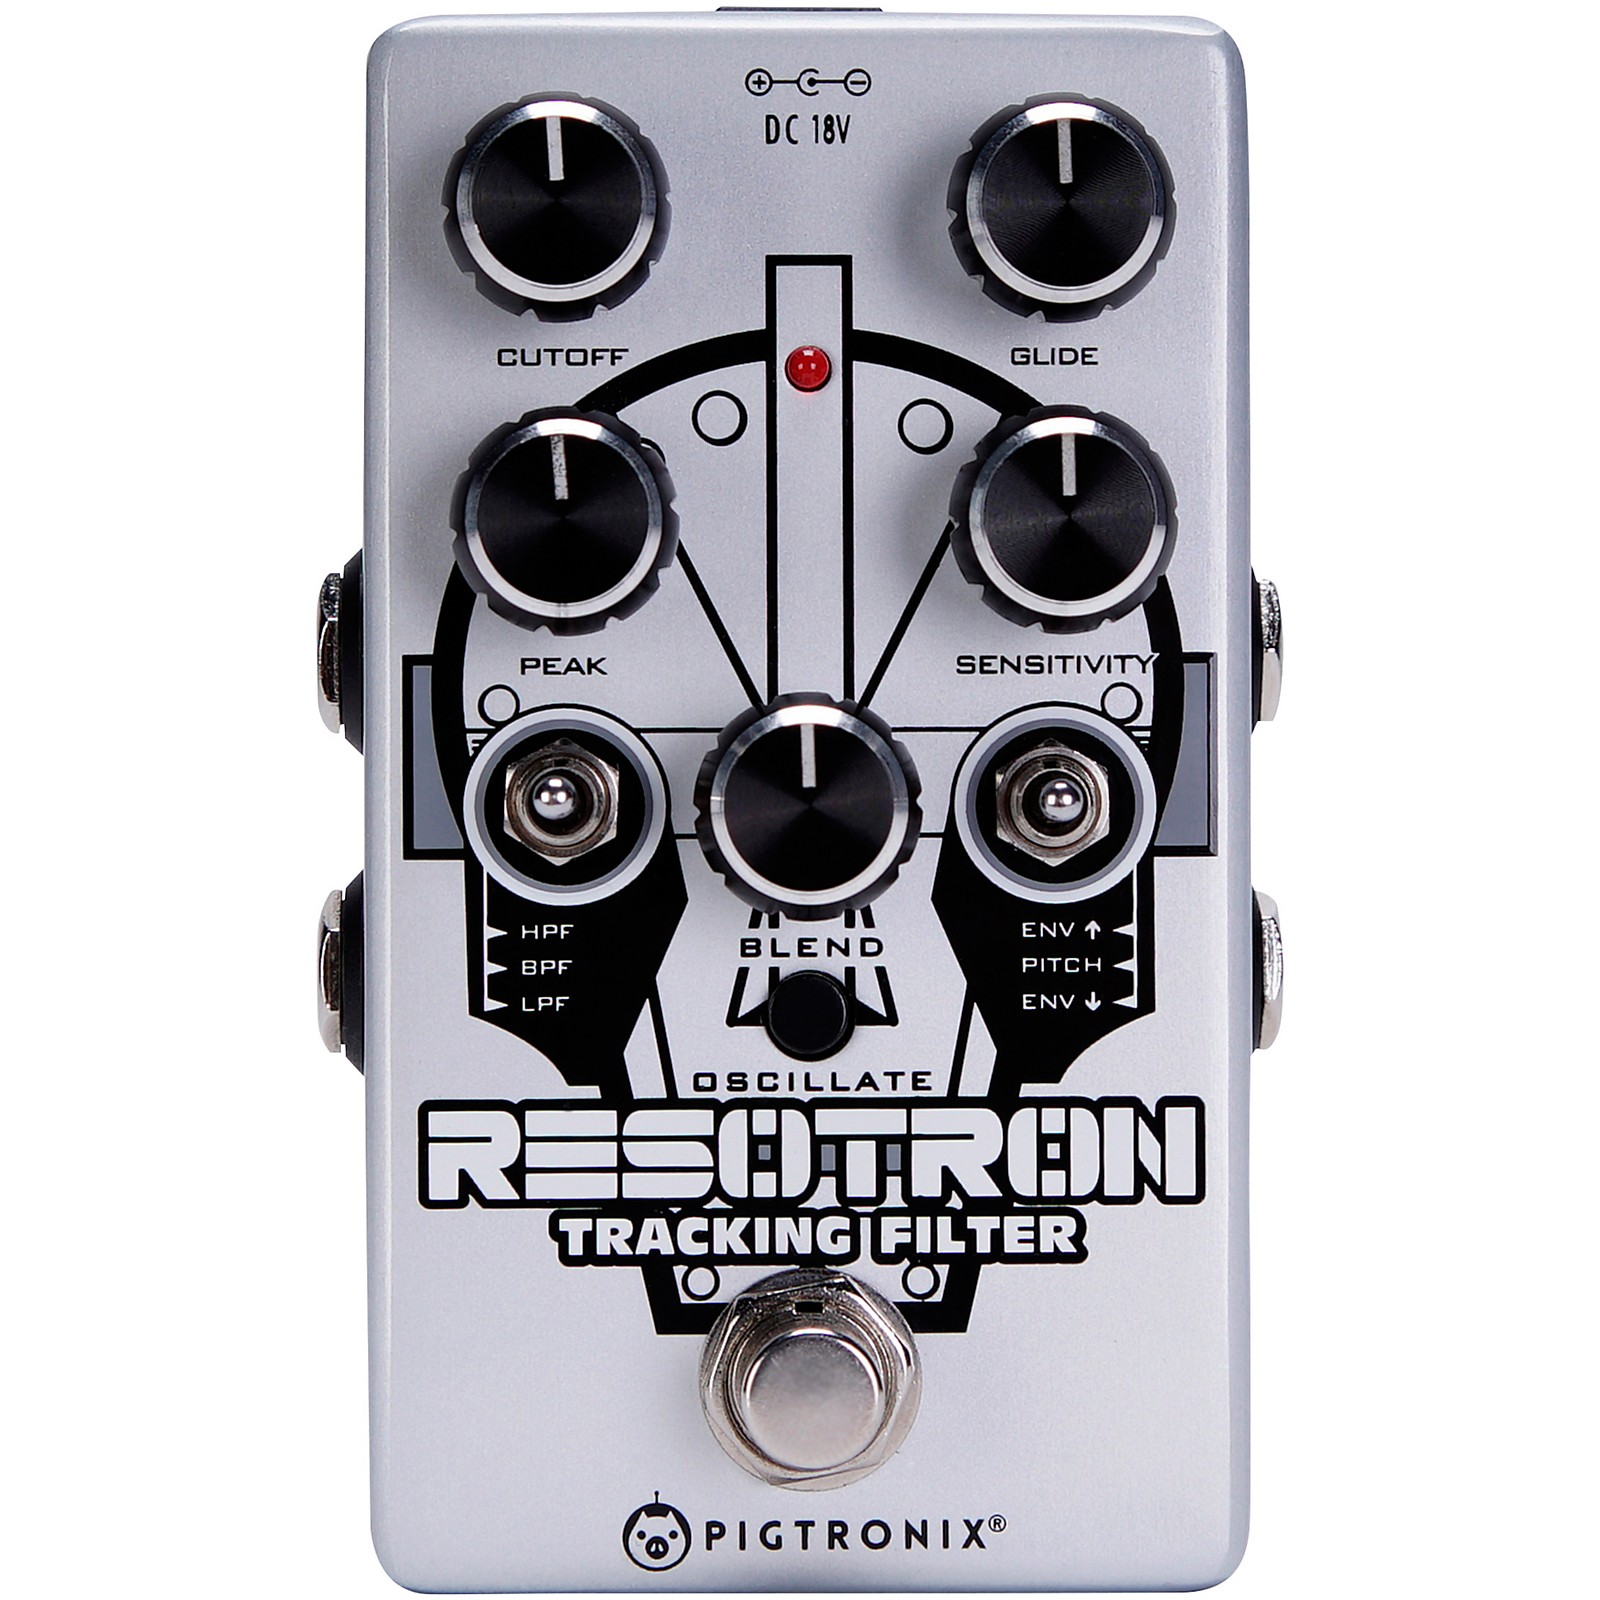 Pigtronix Resotron Filter Effects Pedal